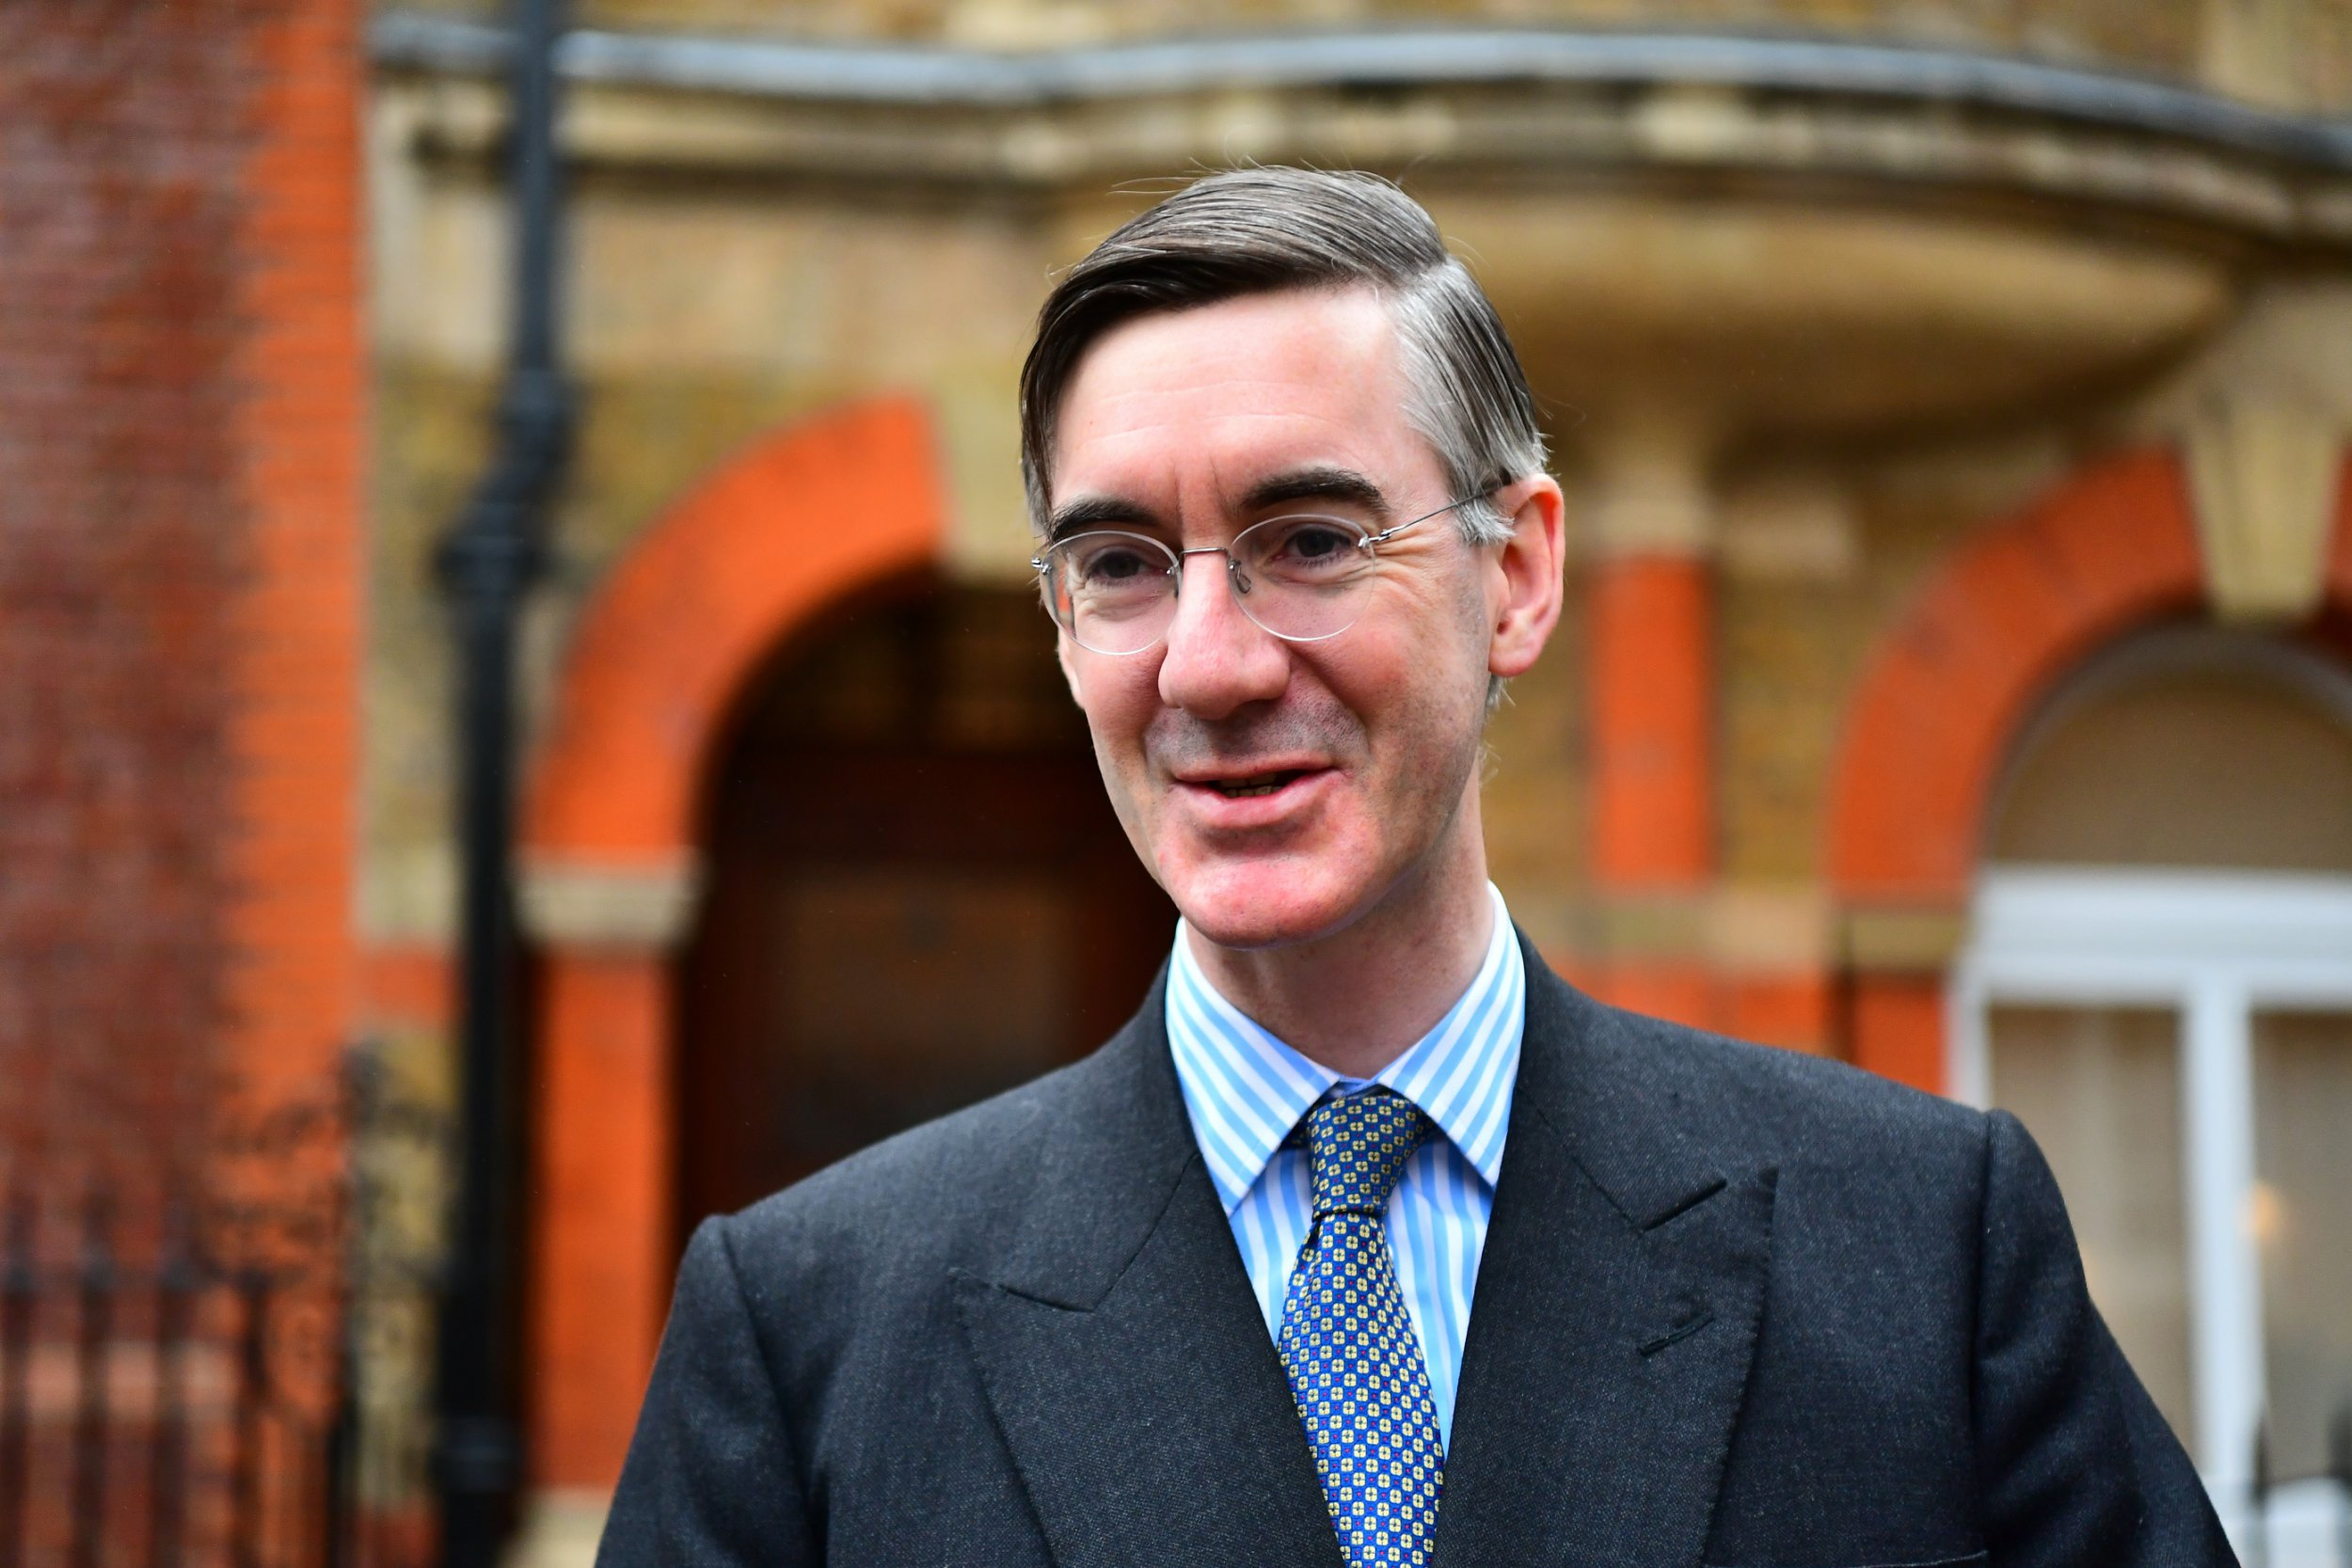 Jacob Rees-Mogg in Westminster, London.